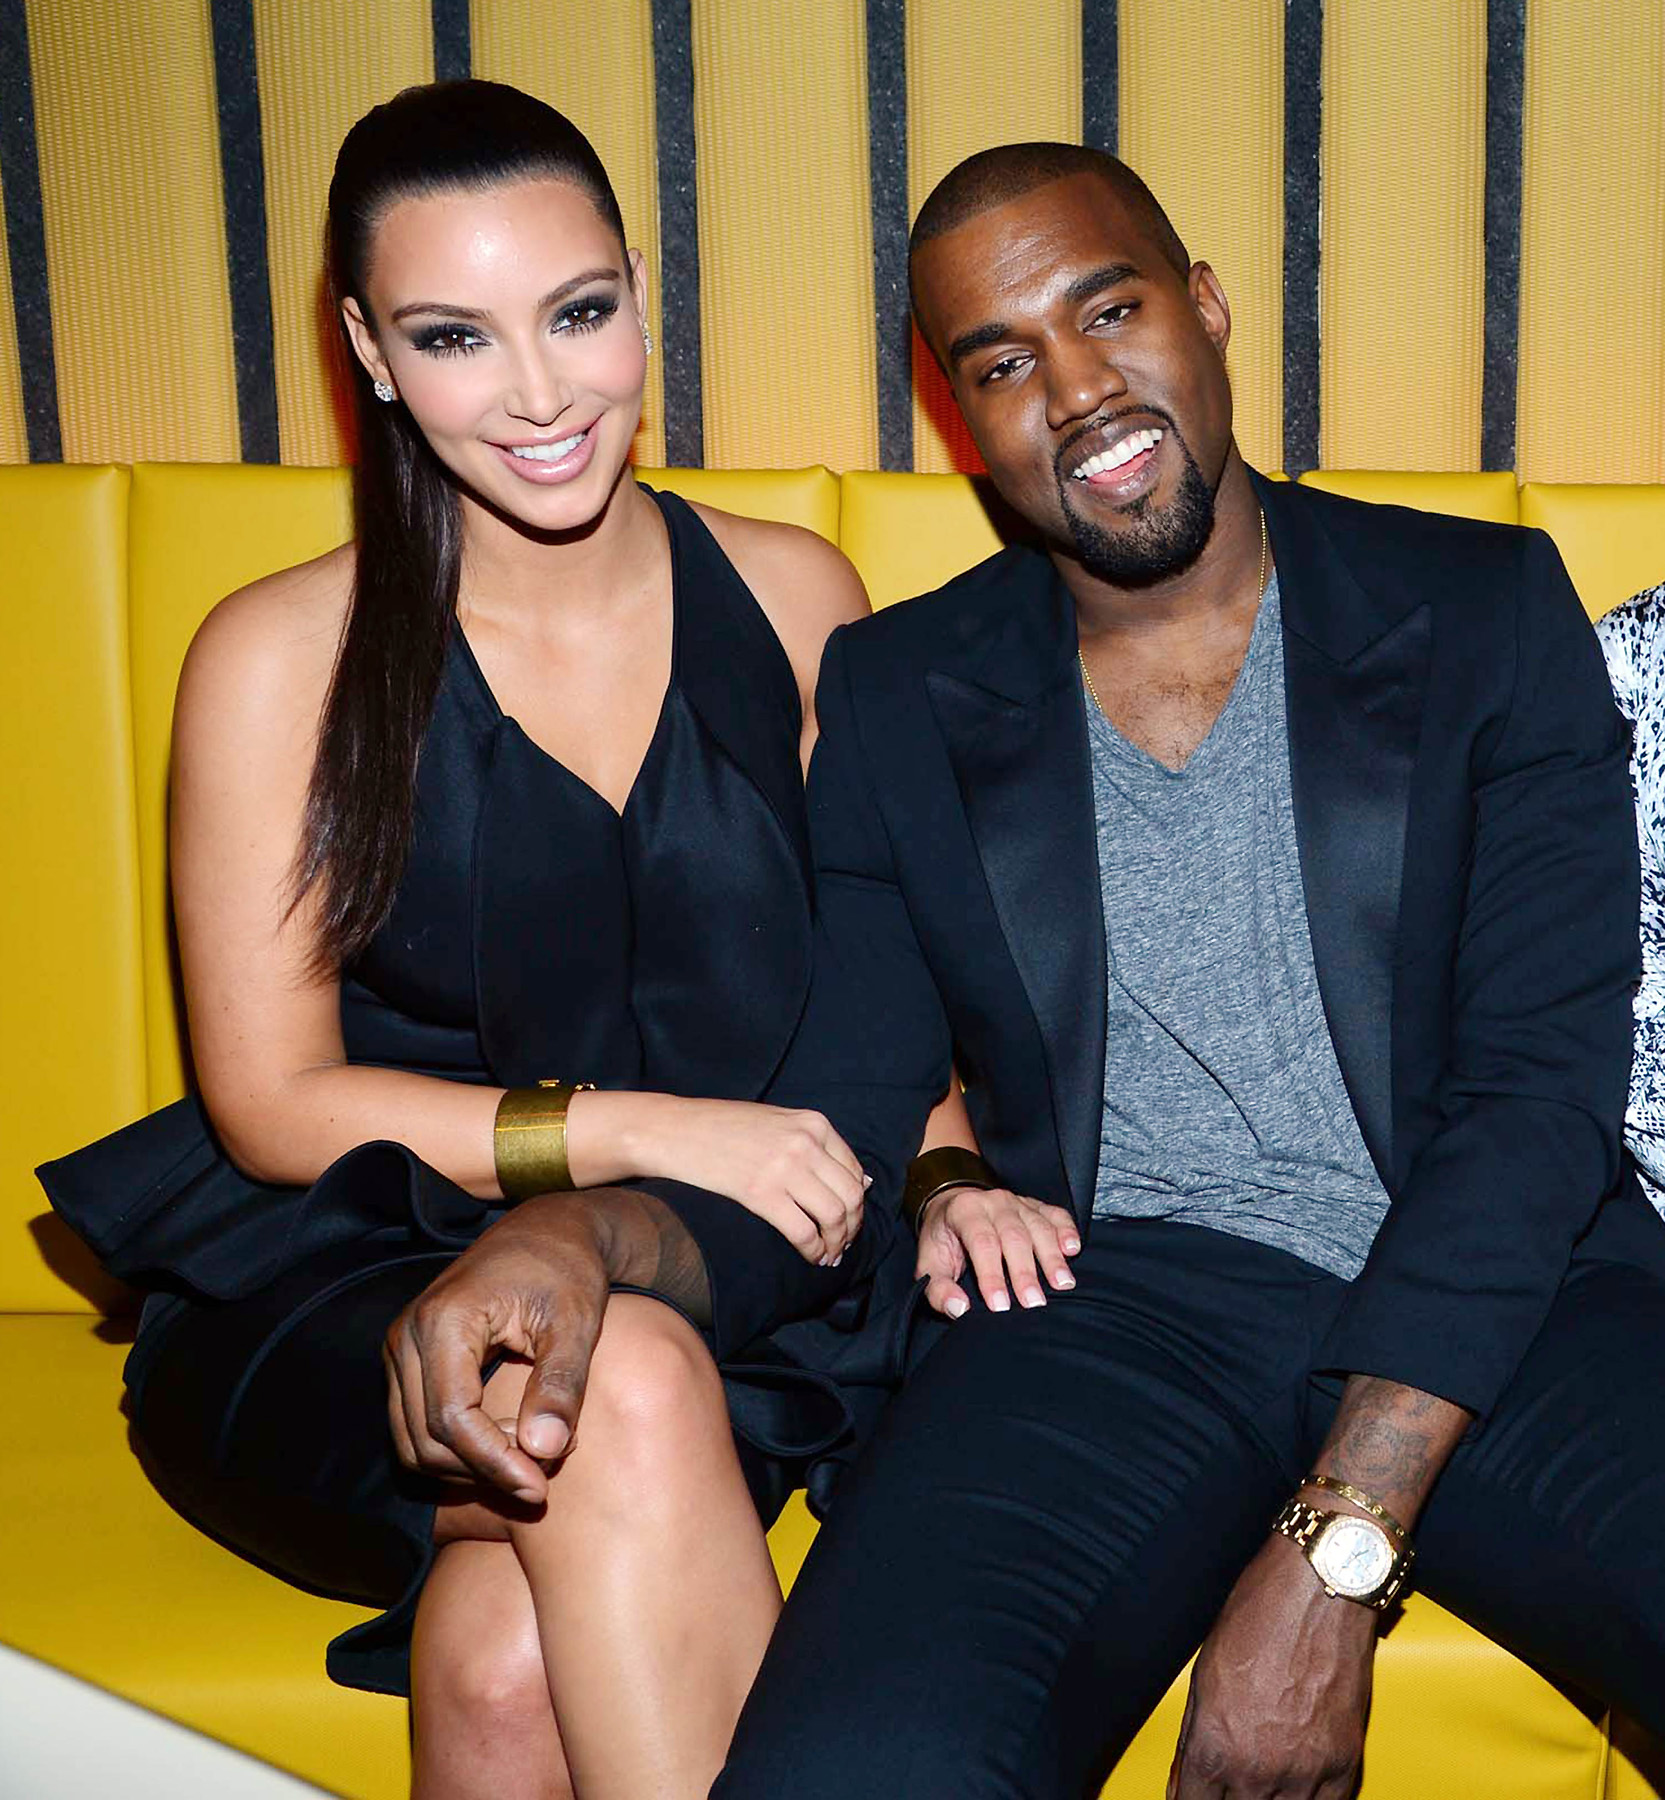 Kim Kardashian and Kanye West's prenup gives her '$1 million for each year they are married' along with their Bel Air Mansion